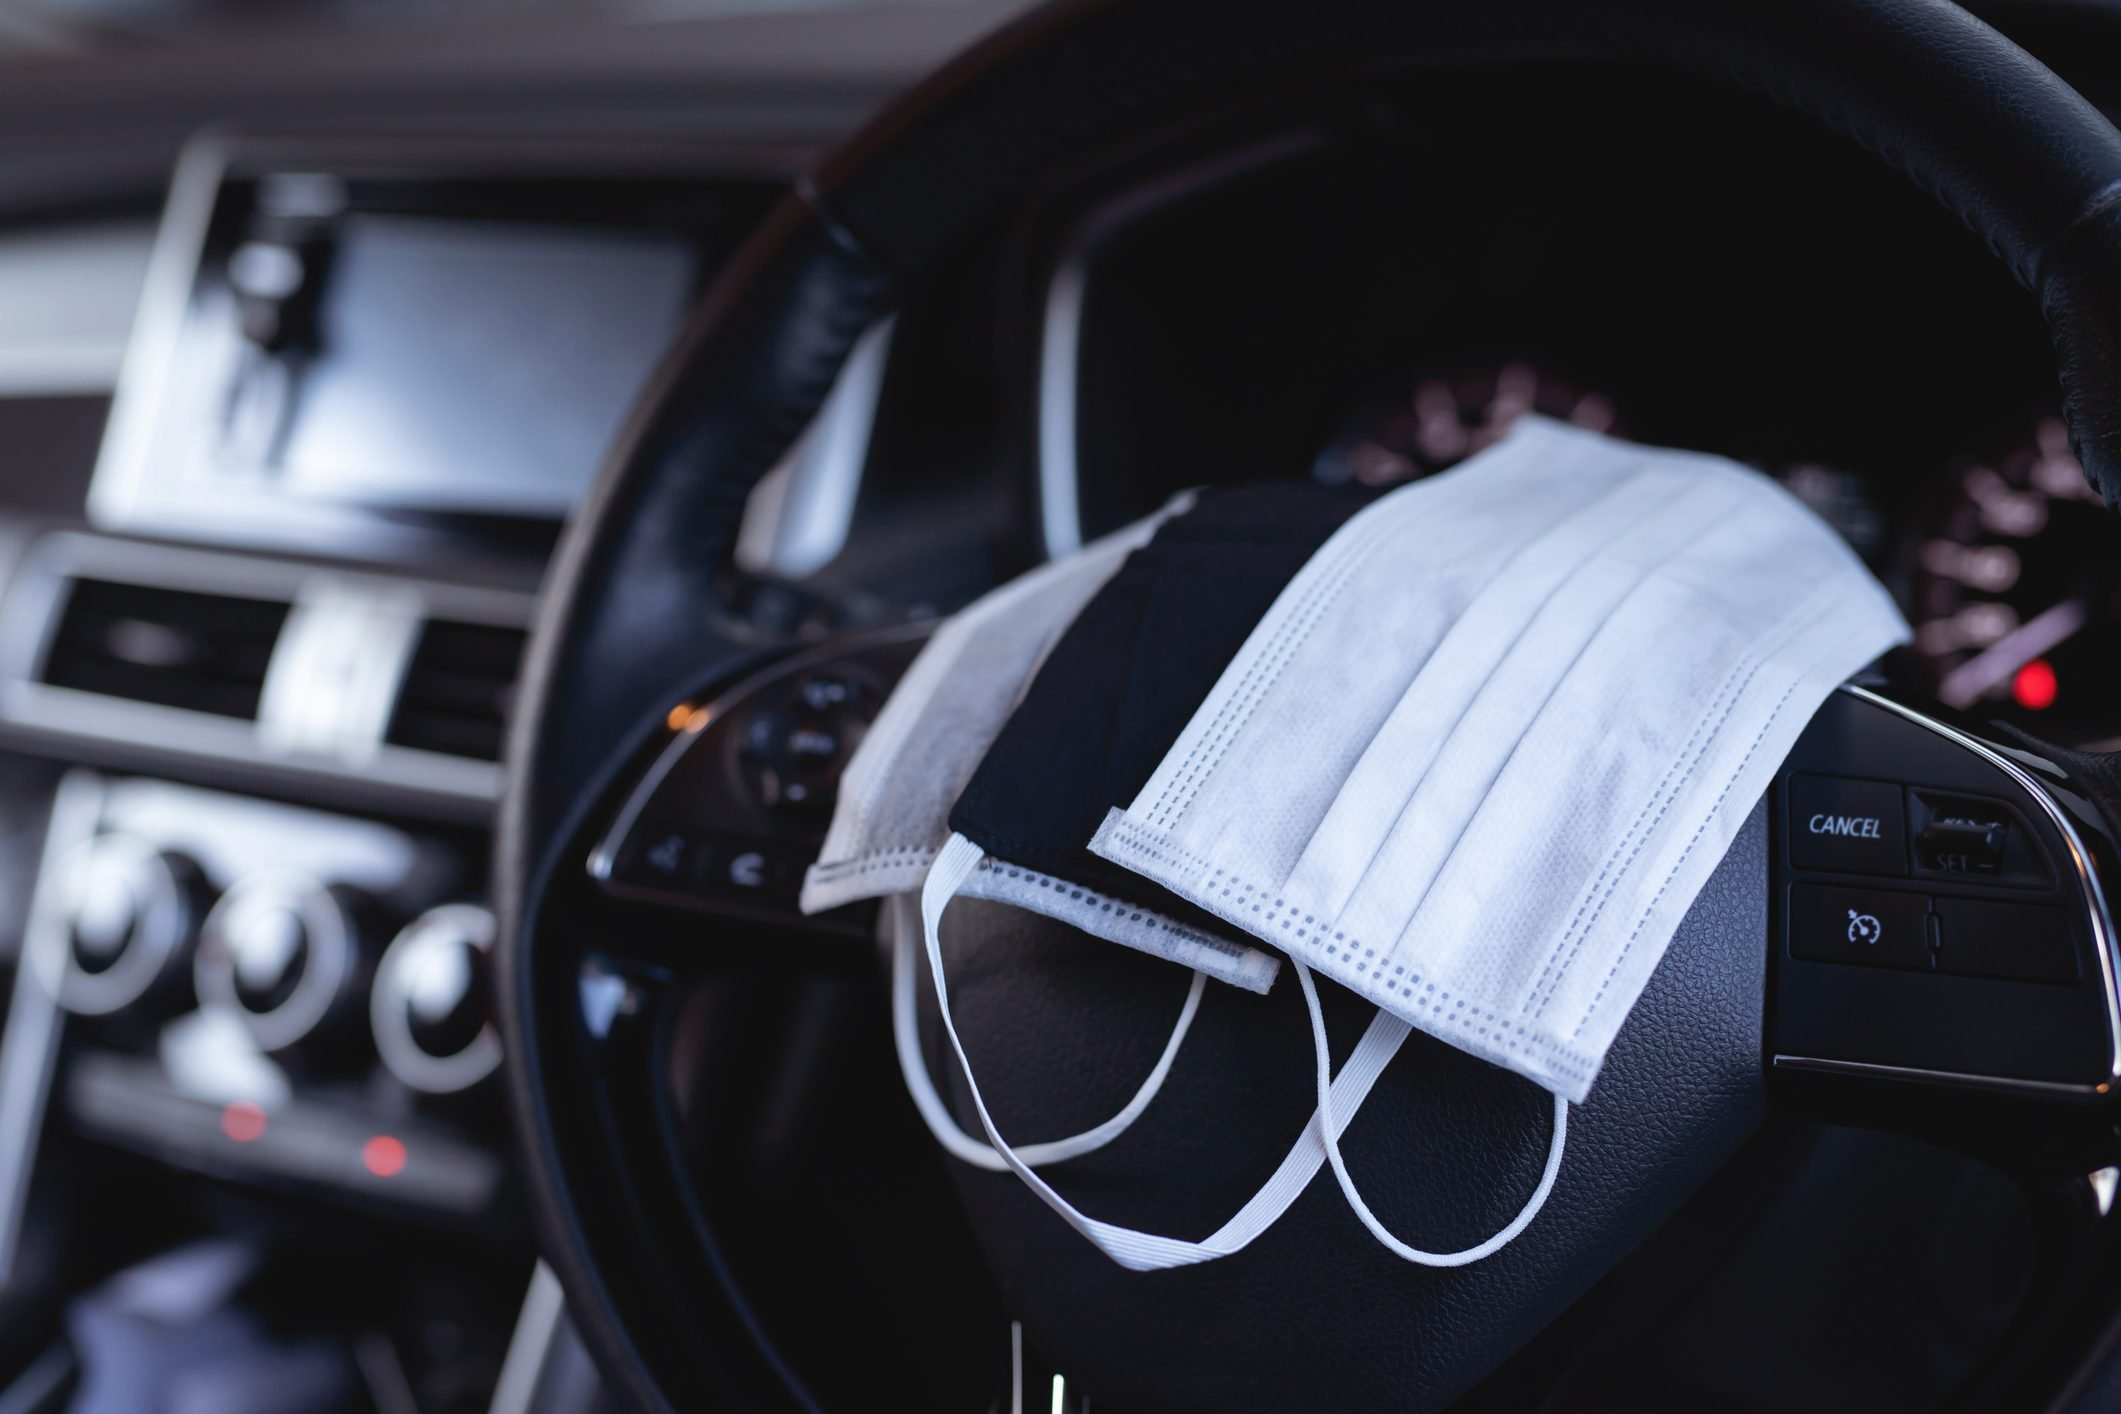 face masks in car to prevent the spread of covid-19